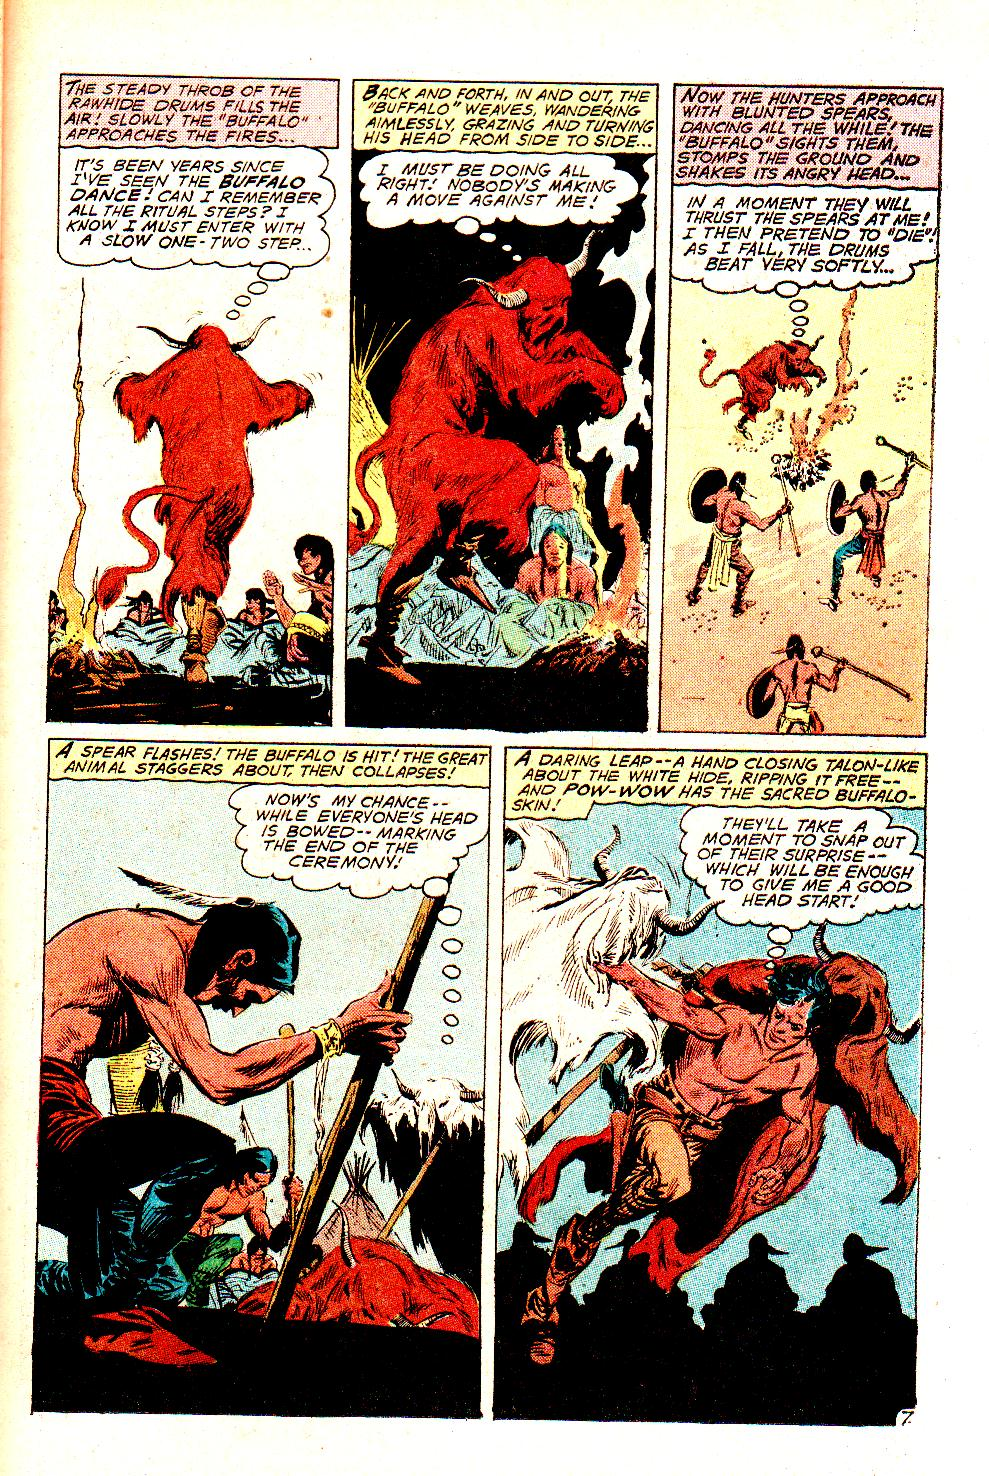 Read online All-Star Western (1970) comic -  Issue #11 - 35